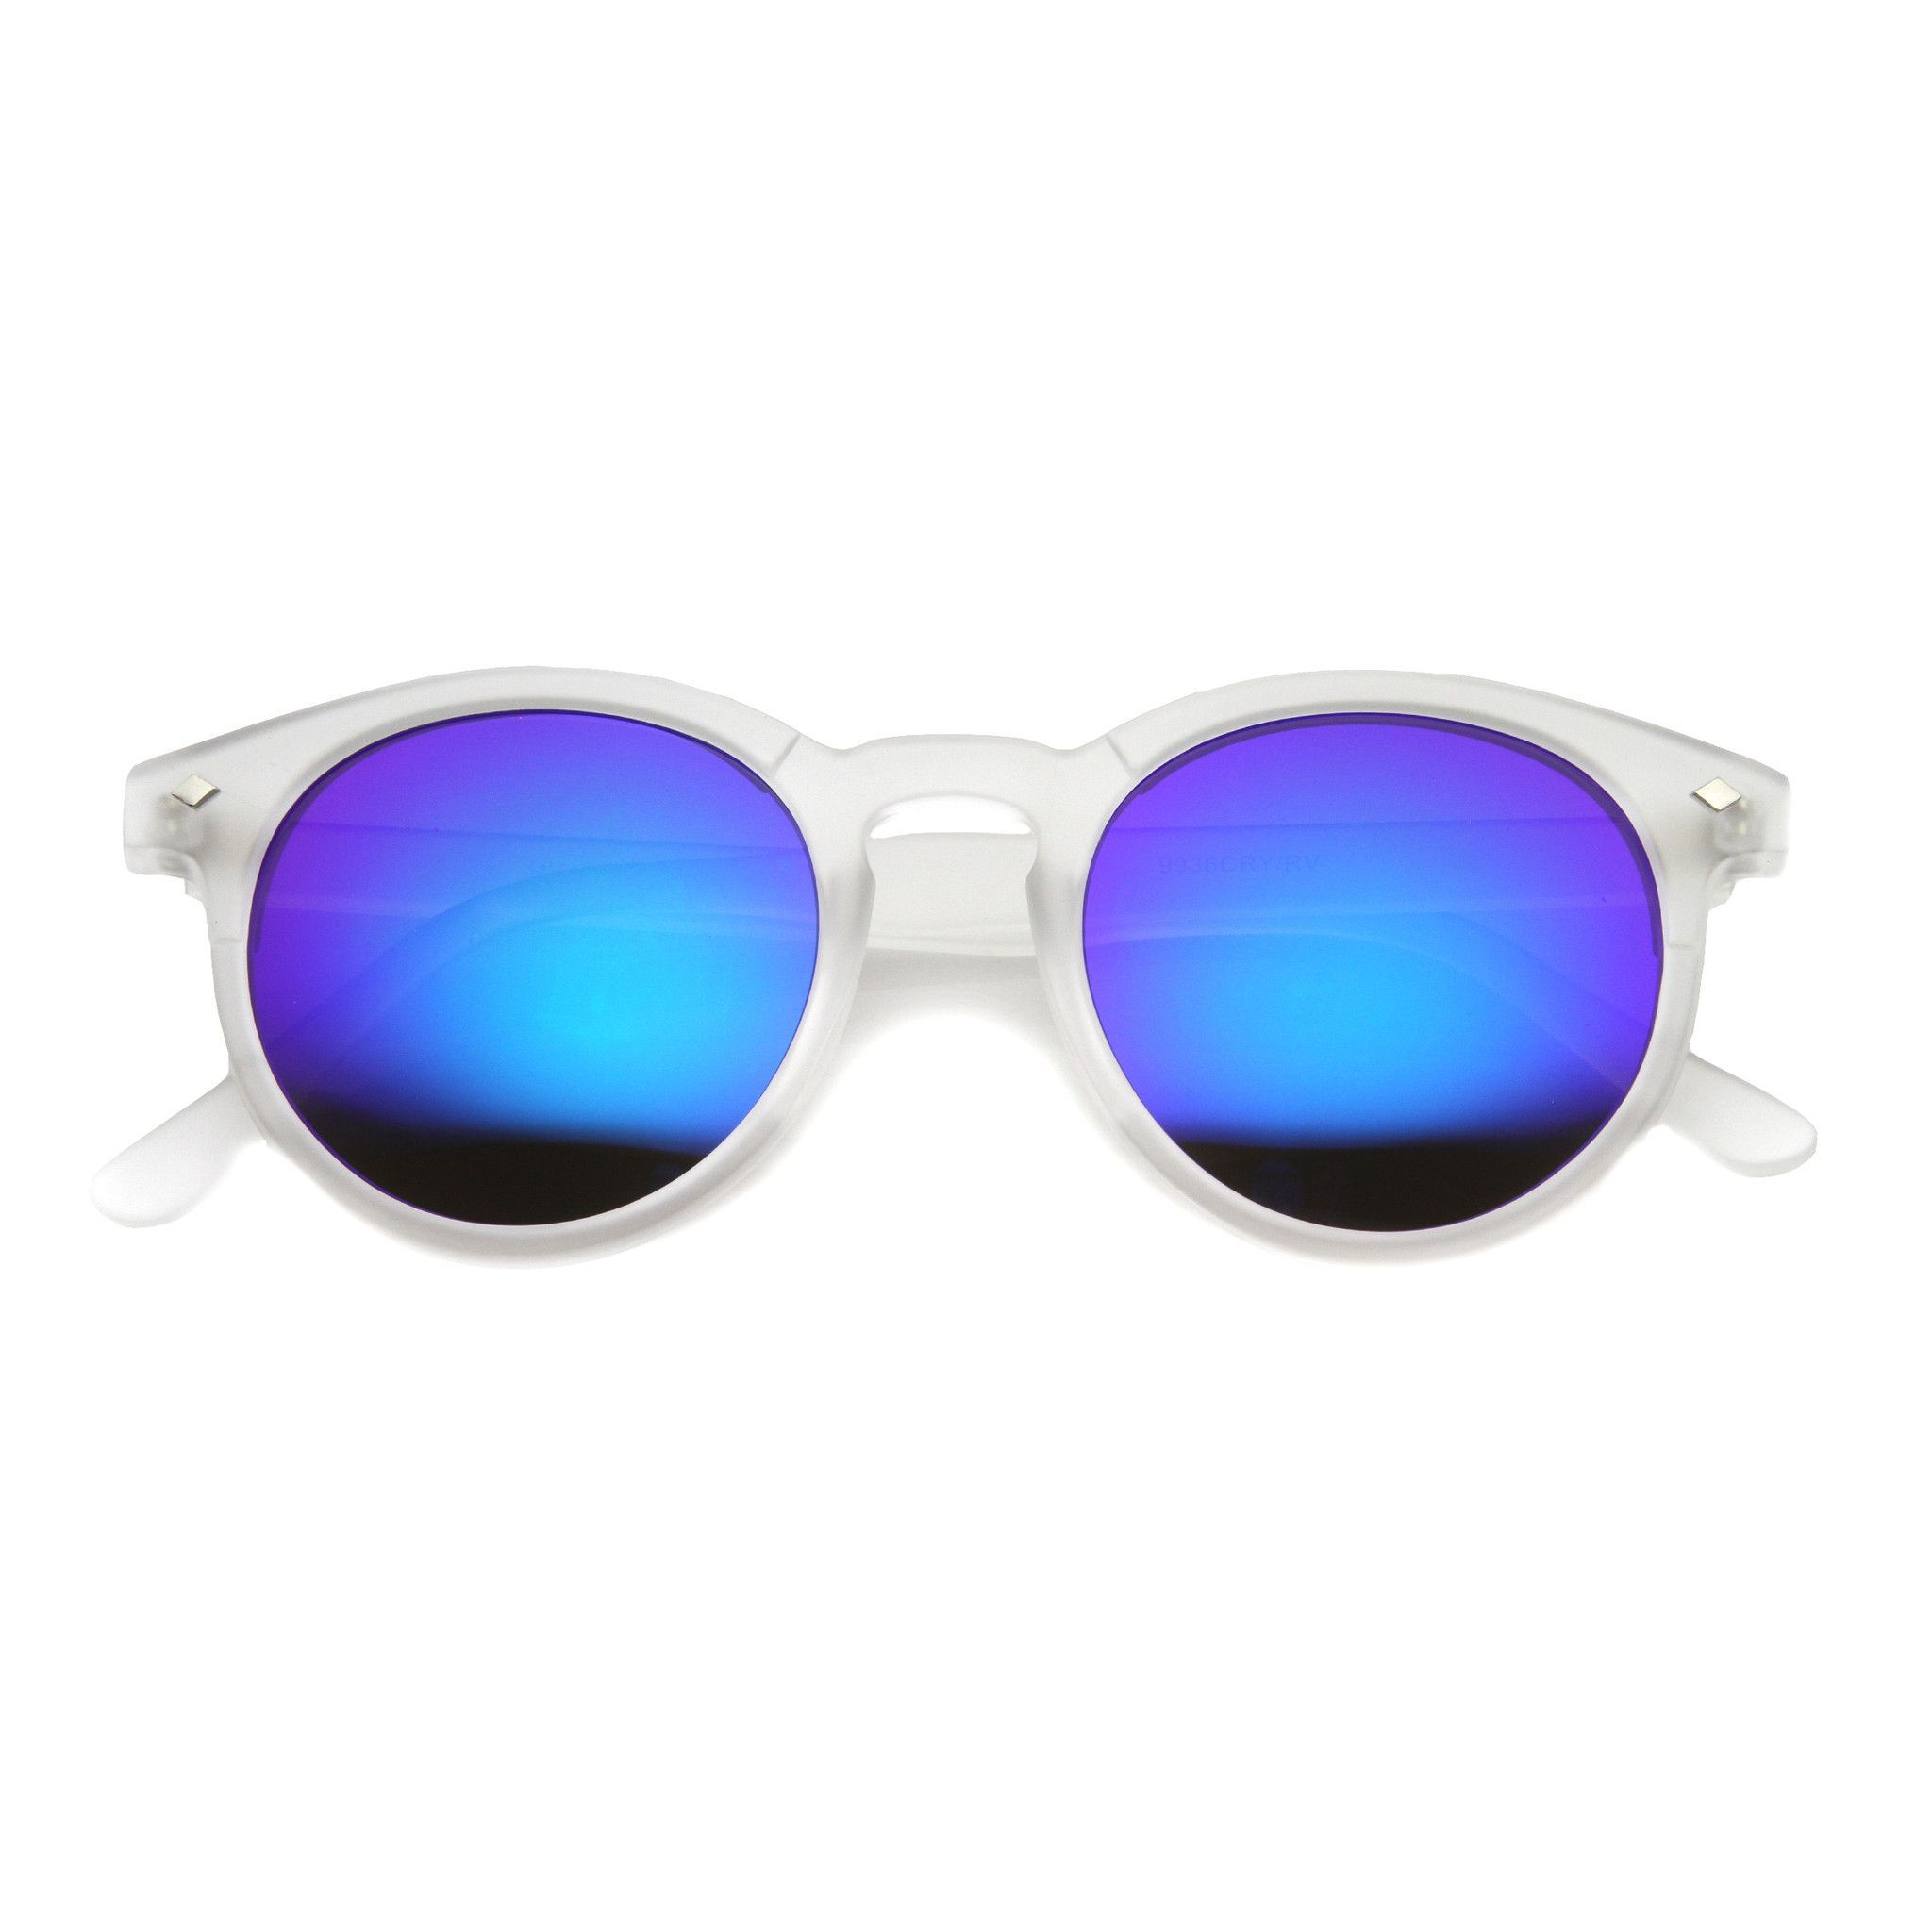 5296c3976224c Retro P3 Round Flash Color Mirrored Lens Colorful Sunglasses 8932